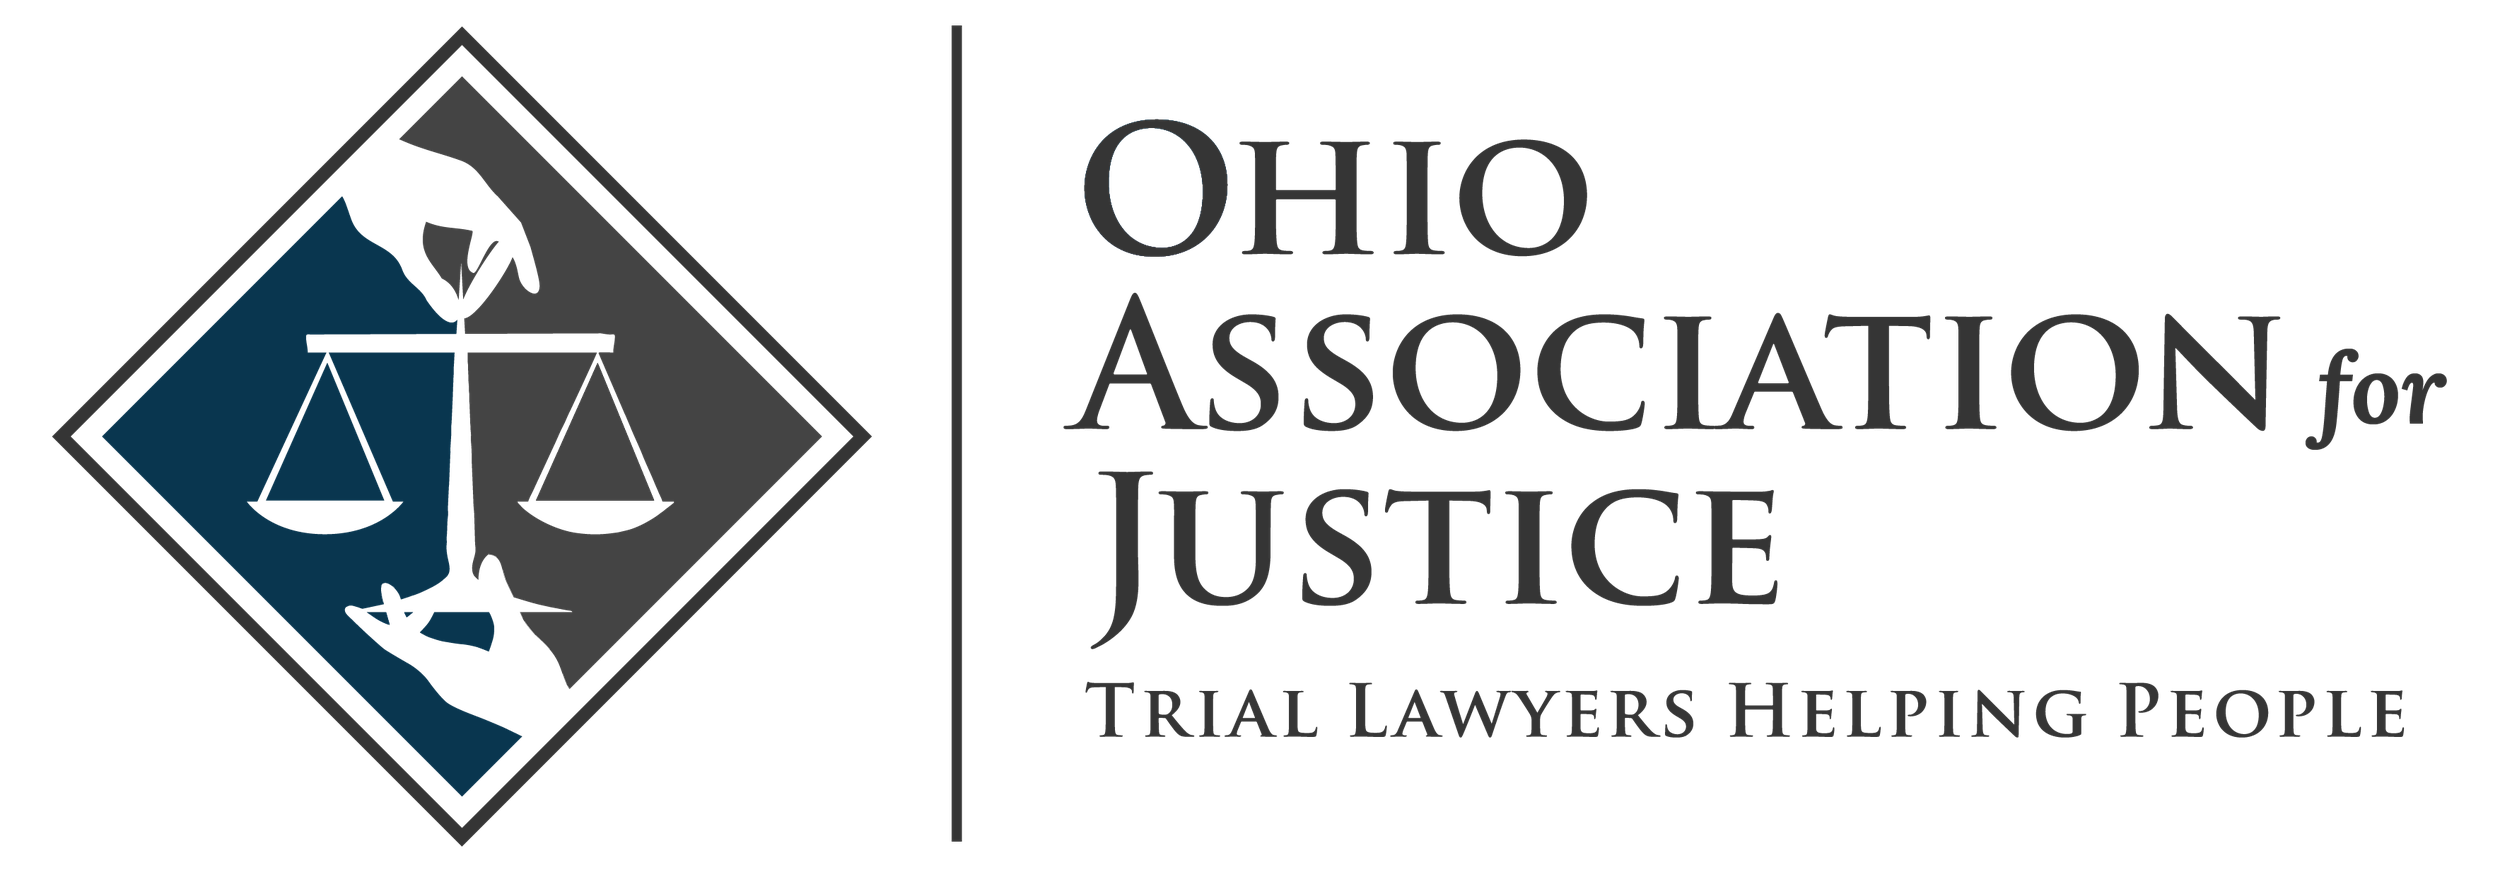 Ohio Assocation for Justice